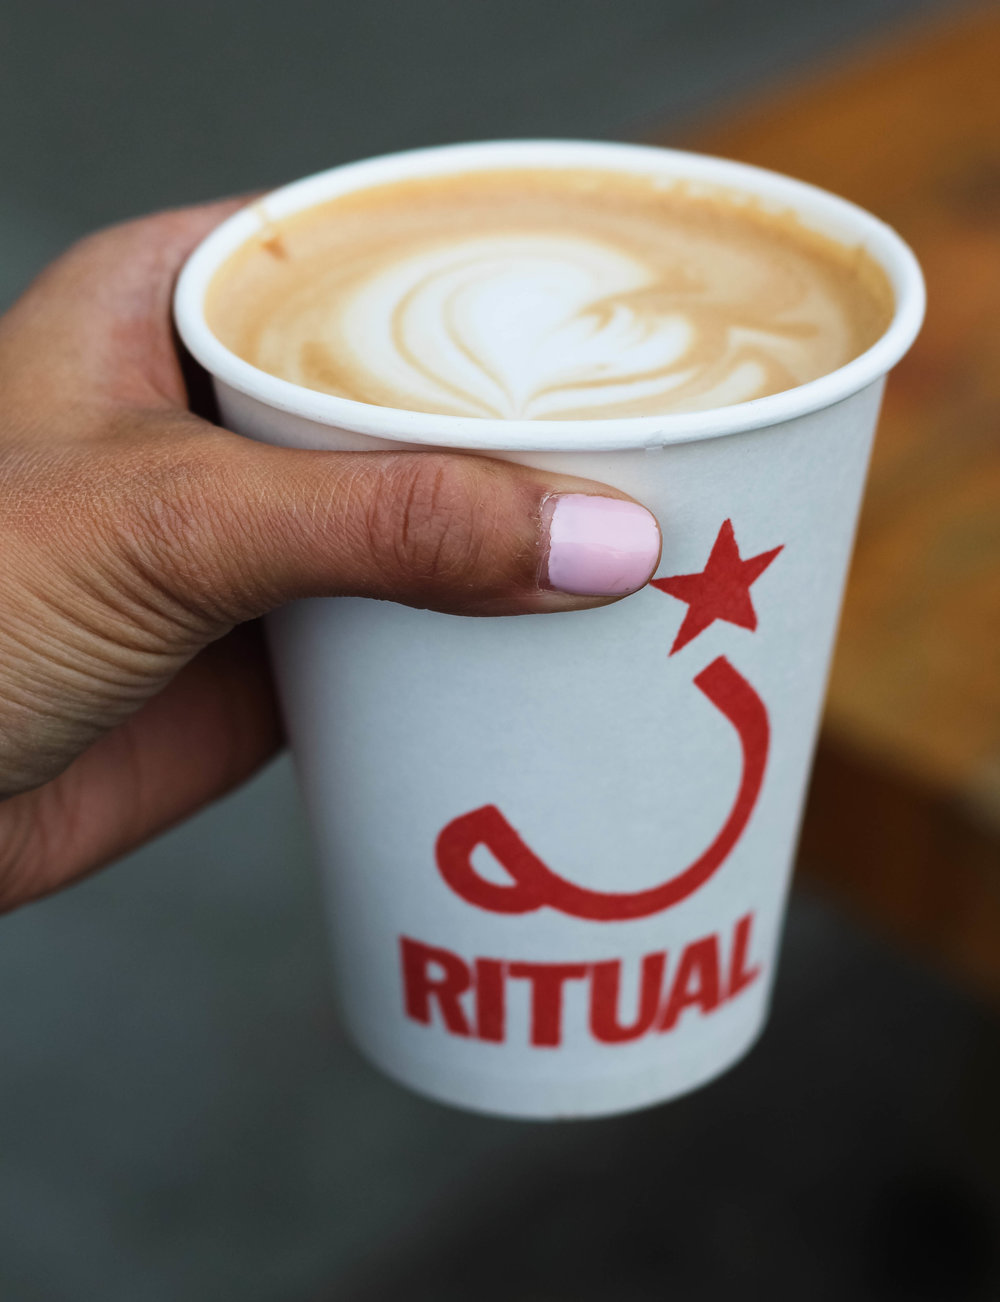 Sugar and Stamps: Ritual Coffee Roasters in San Francisco